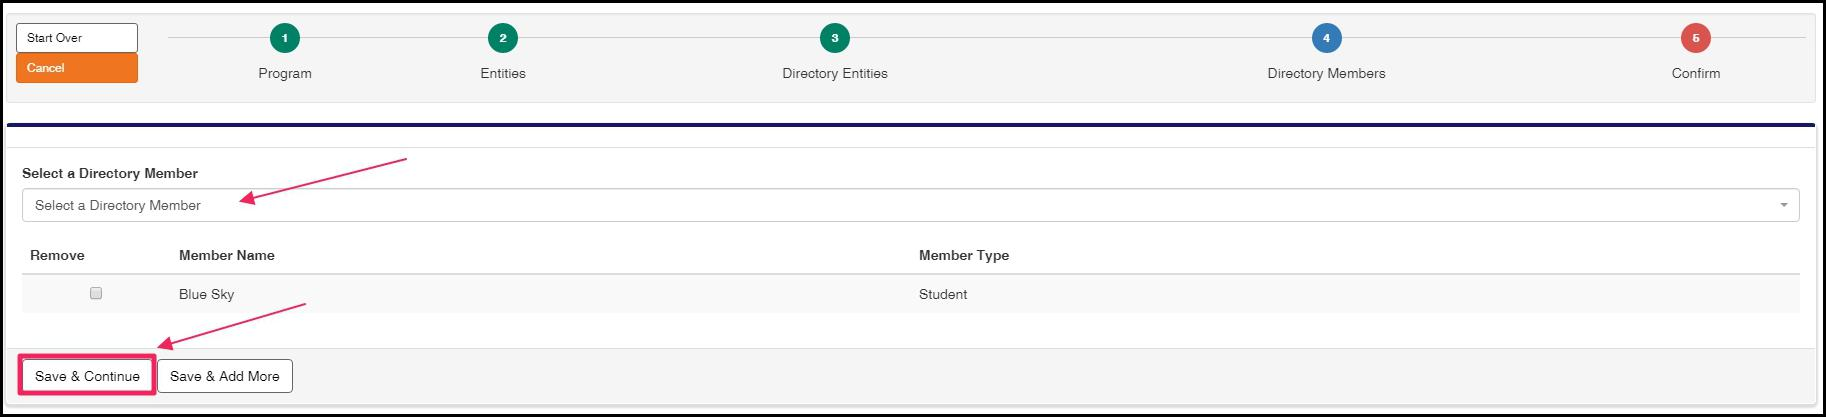 """Click in the Directory Member box to select your preceptor, typically. Then select """"Save & Continue""""."""